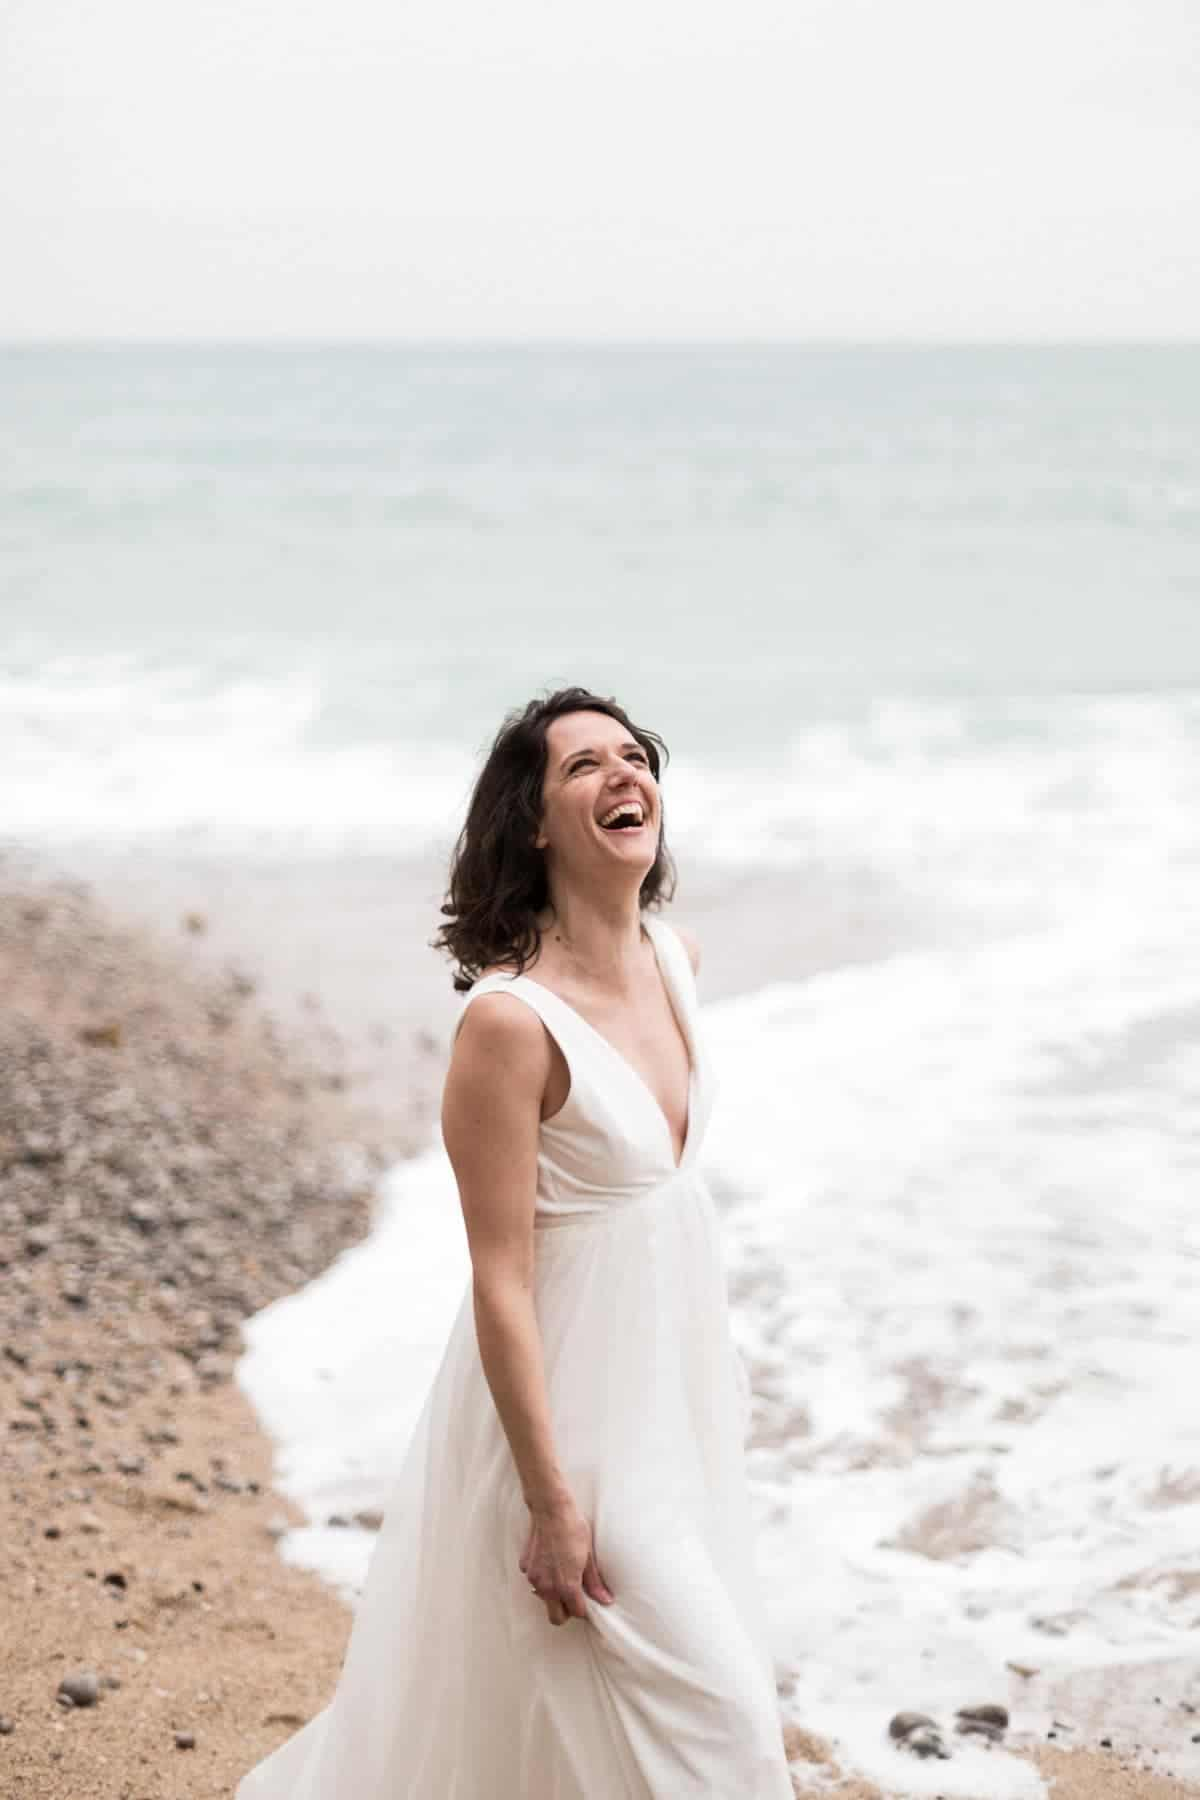 photo d'emotion, la mariée éclate de rire